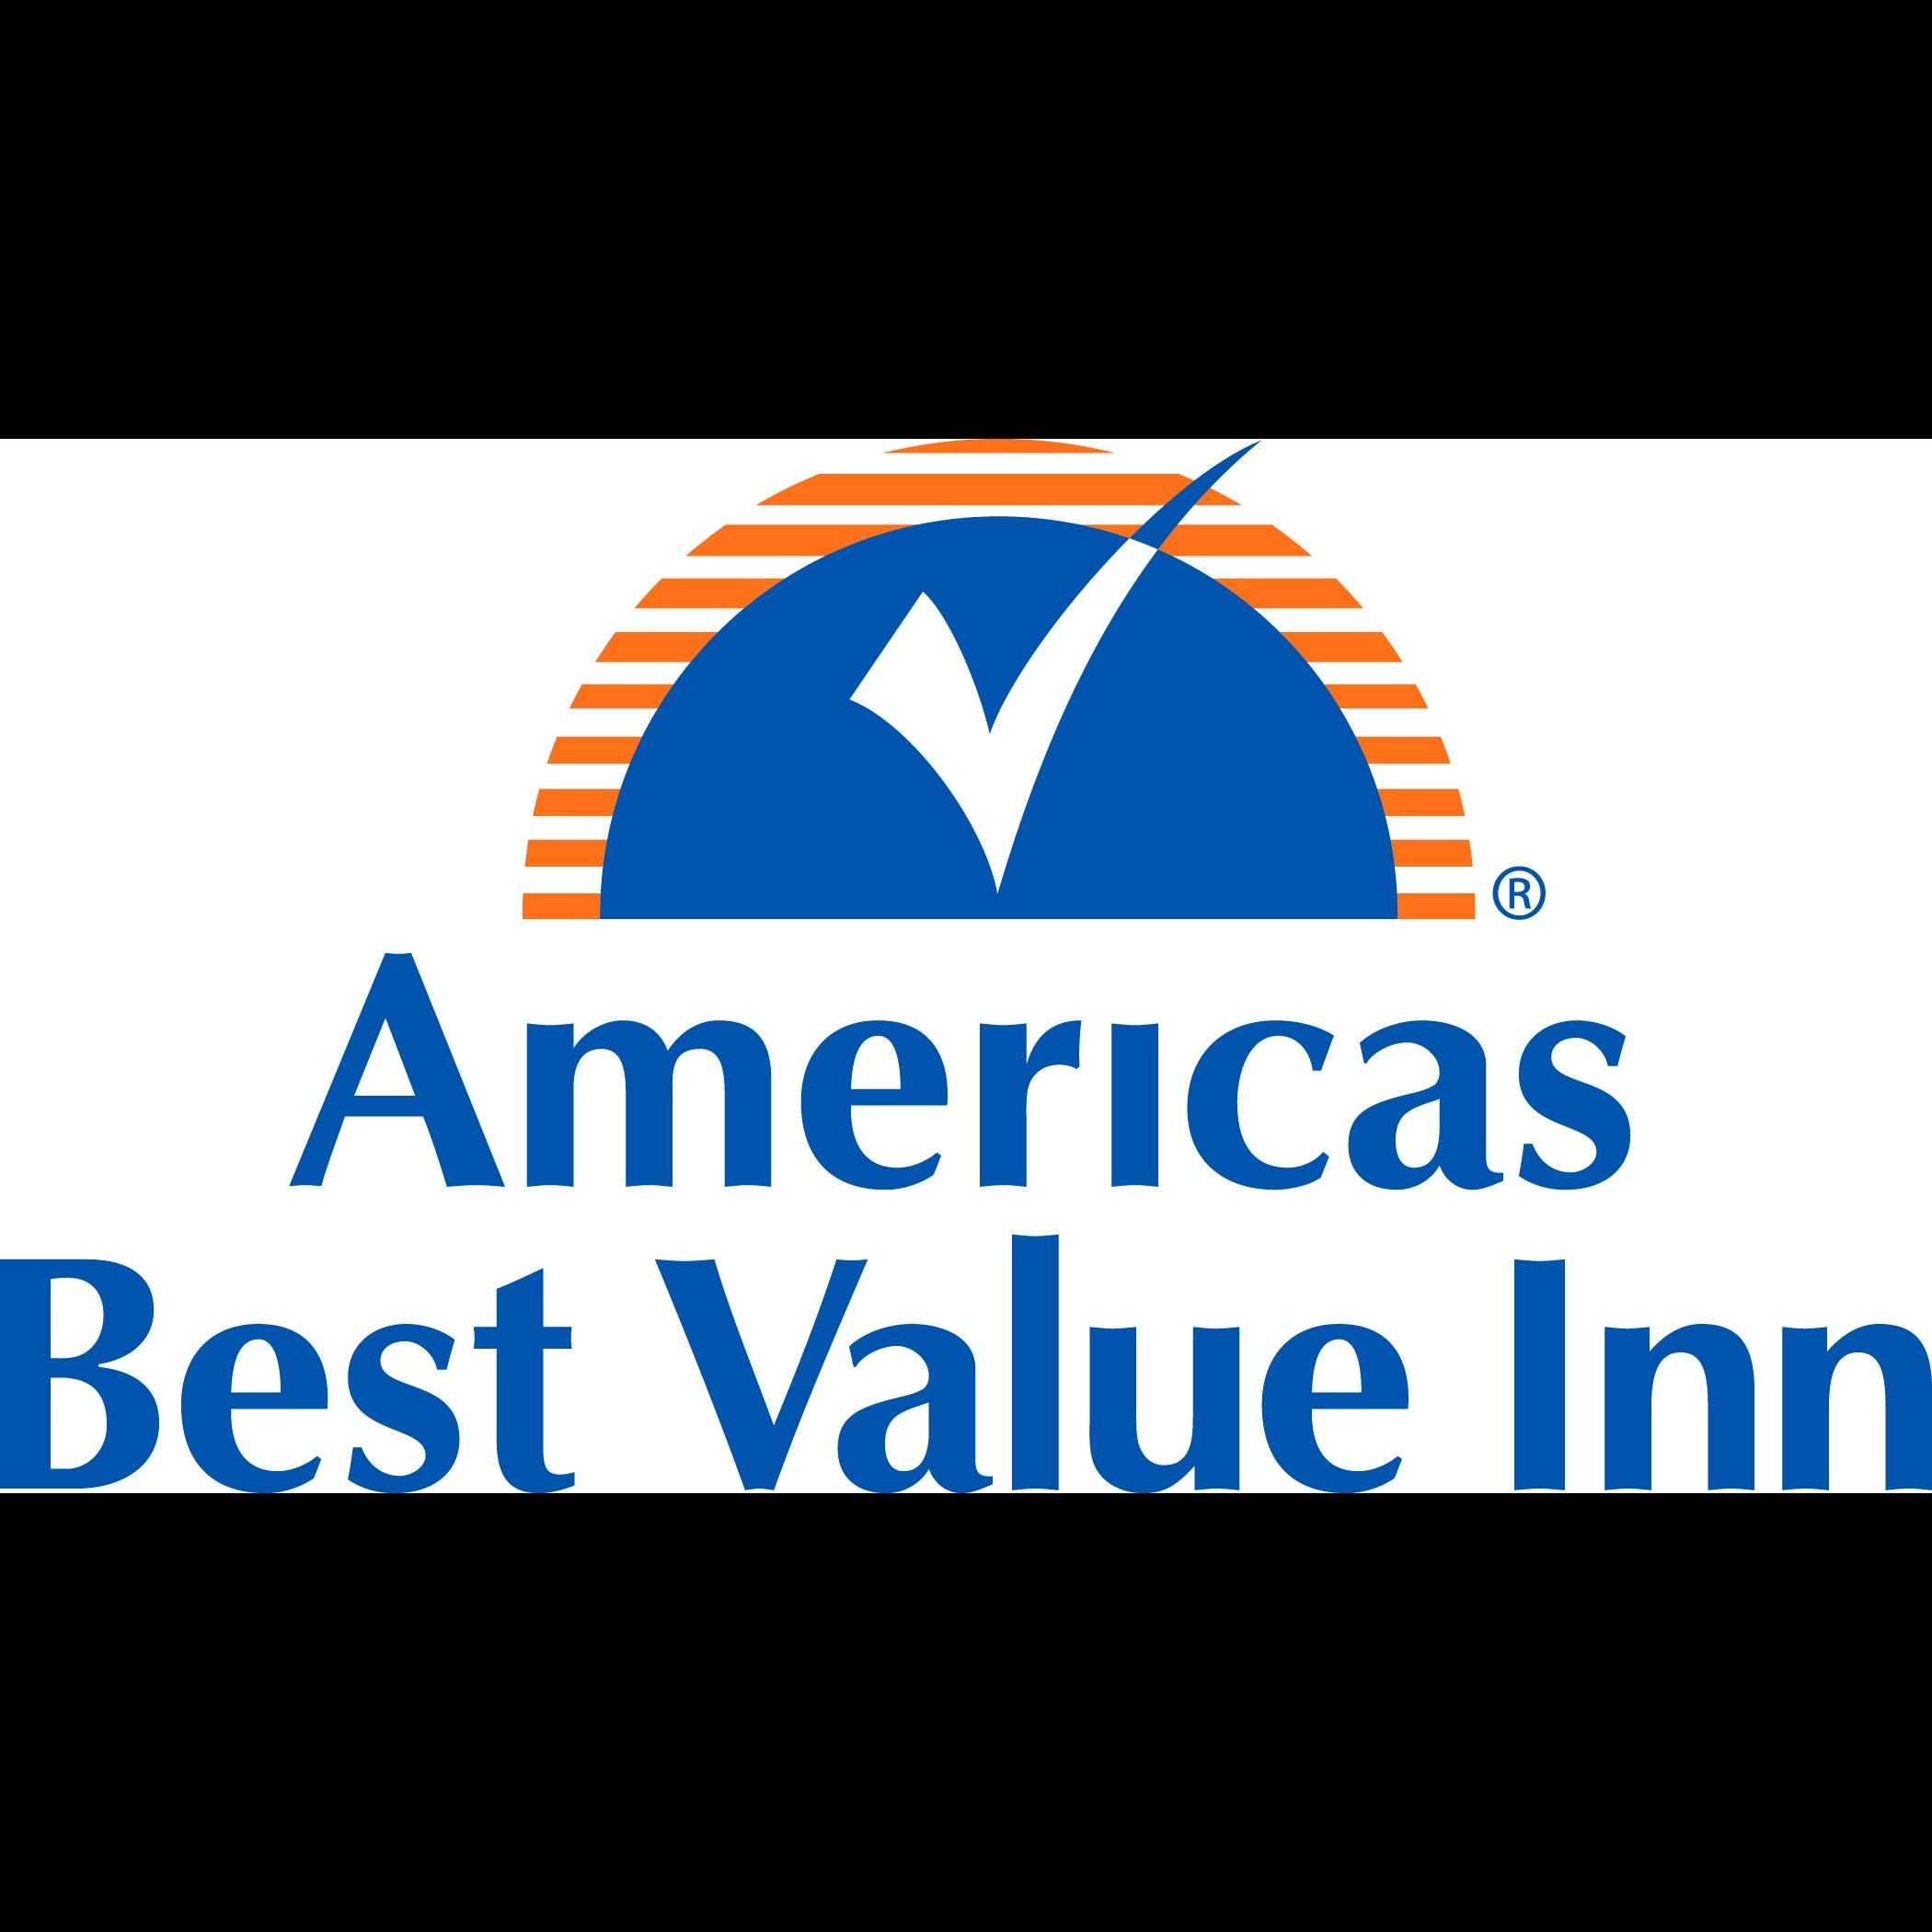 Americas Best Value Inn Muskogee - Muskogee, OK - Hotels & Motels